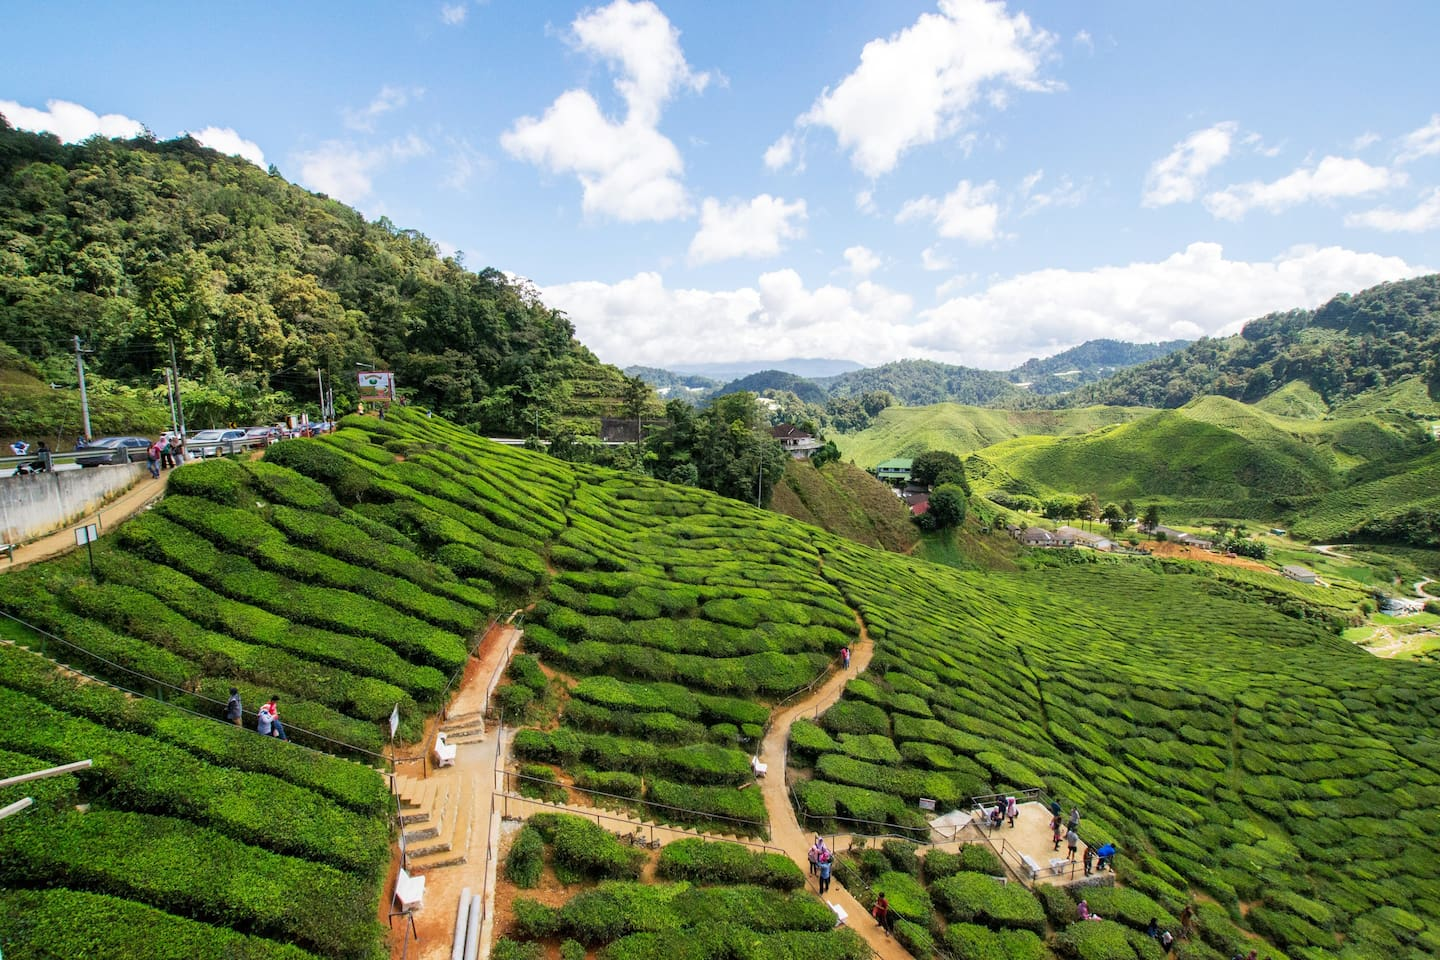 Cameron Valley Ringlet Tea Plantation just 14kms away from our place and on the way up from Tapah